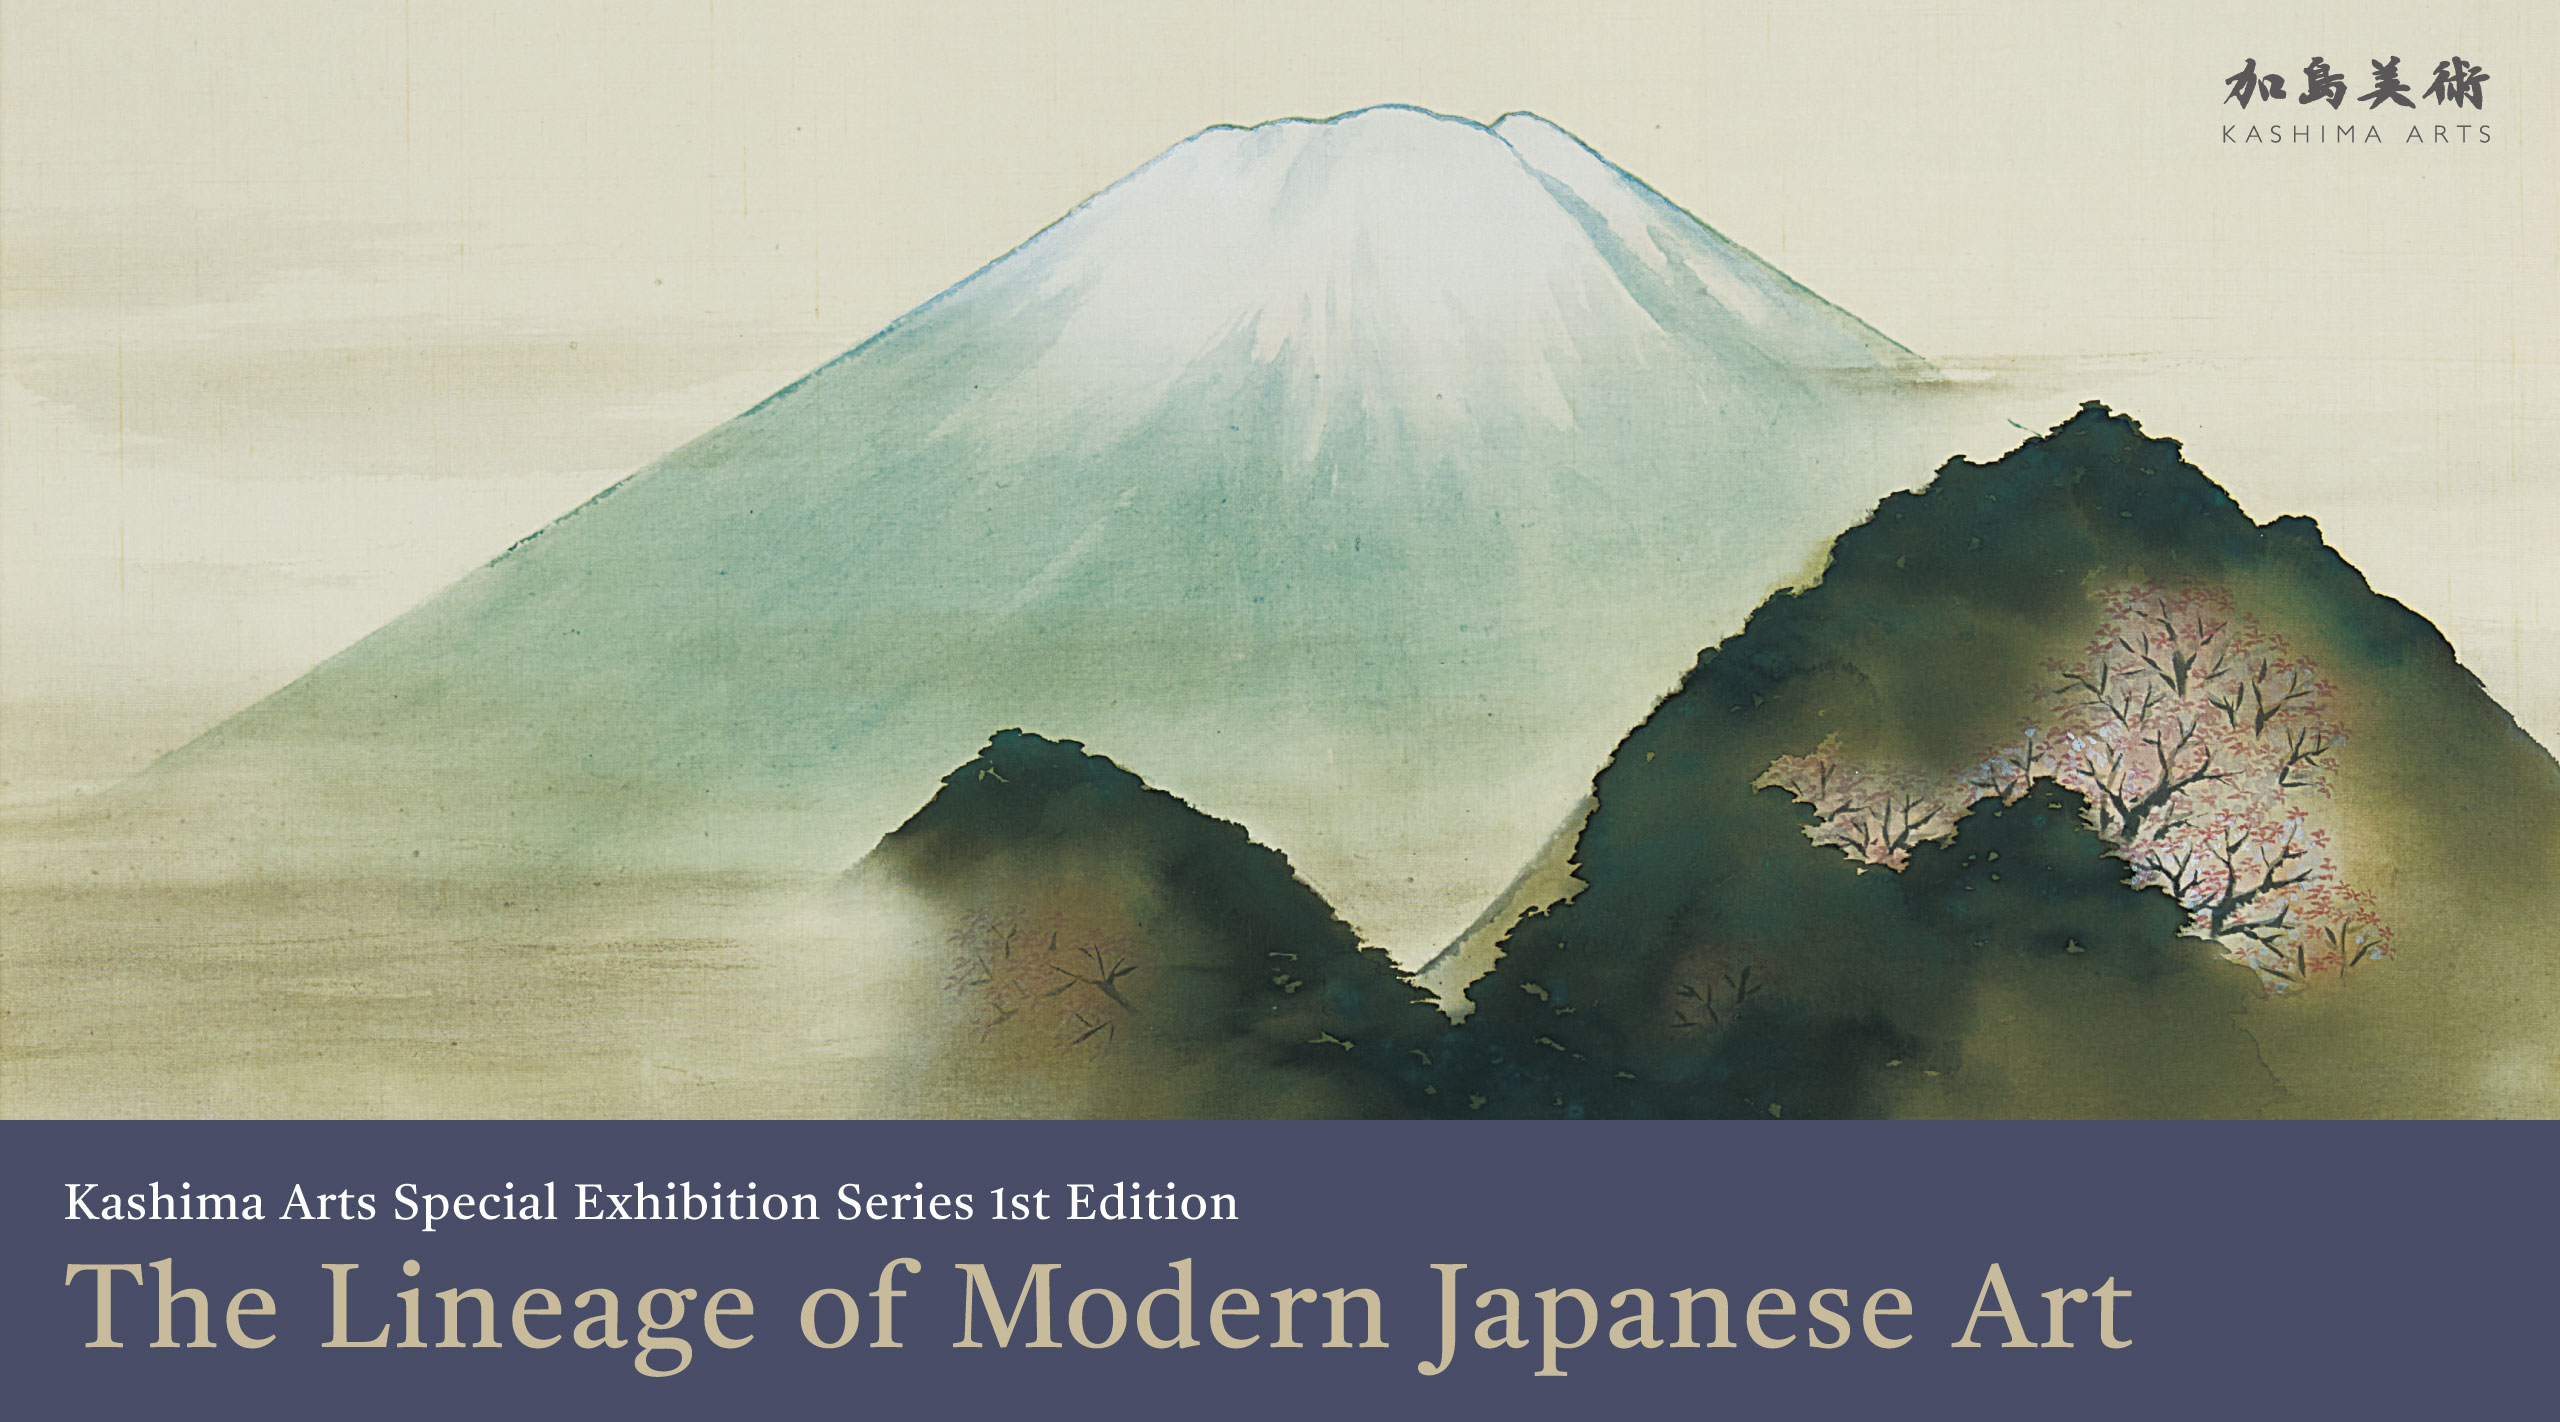 The Lineage of Modern Japanese Art